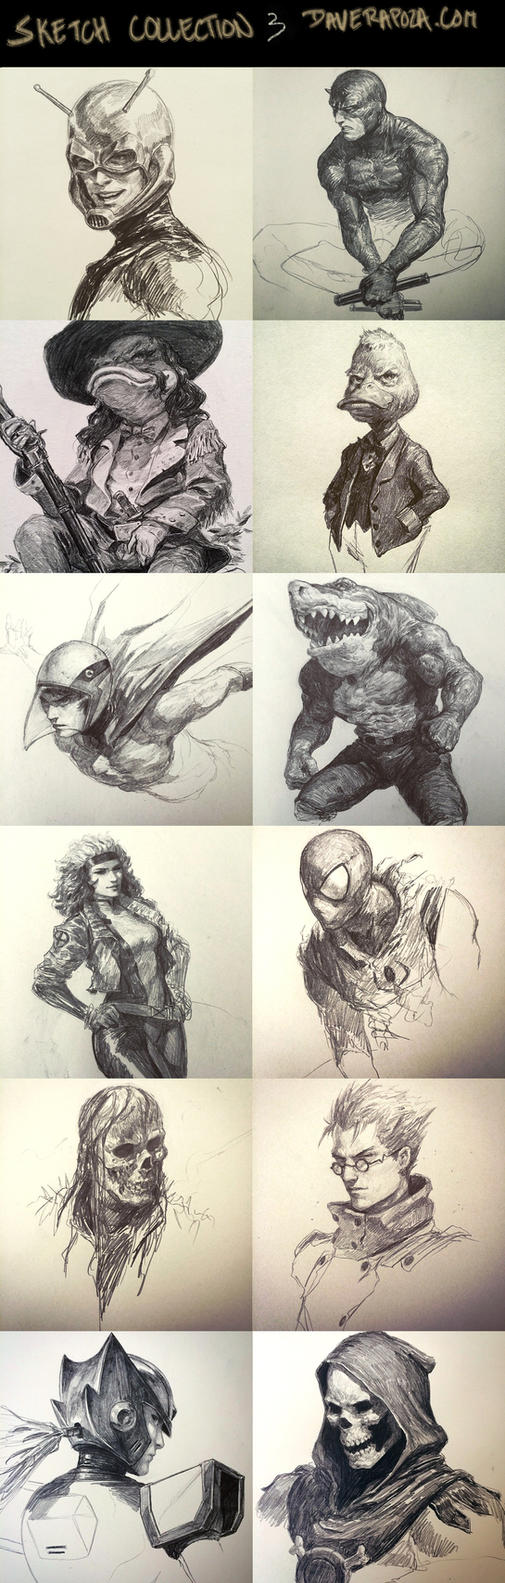 Sketch Collection part 3! by DavidRapozaArt